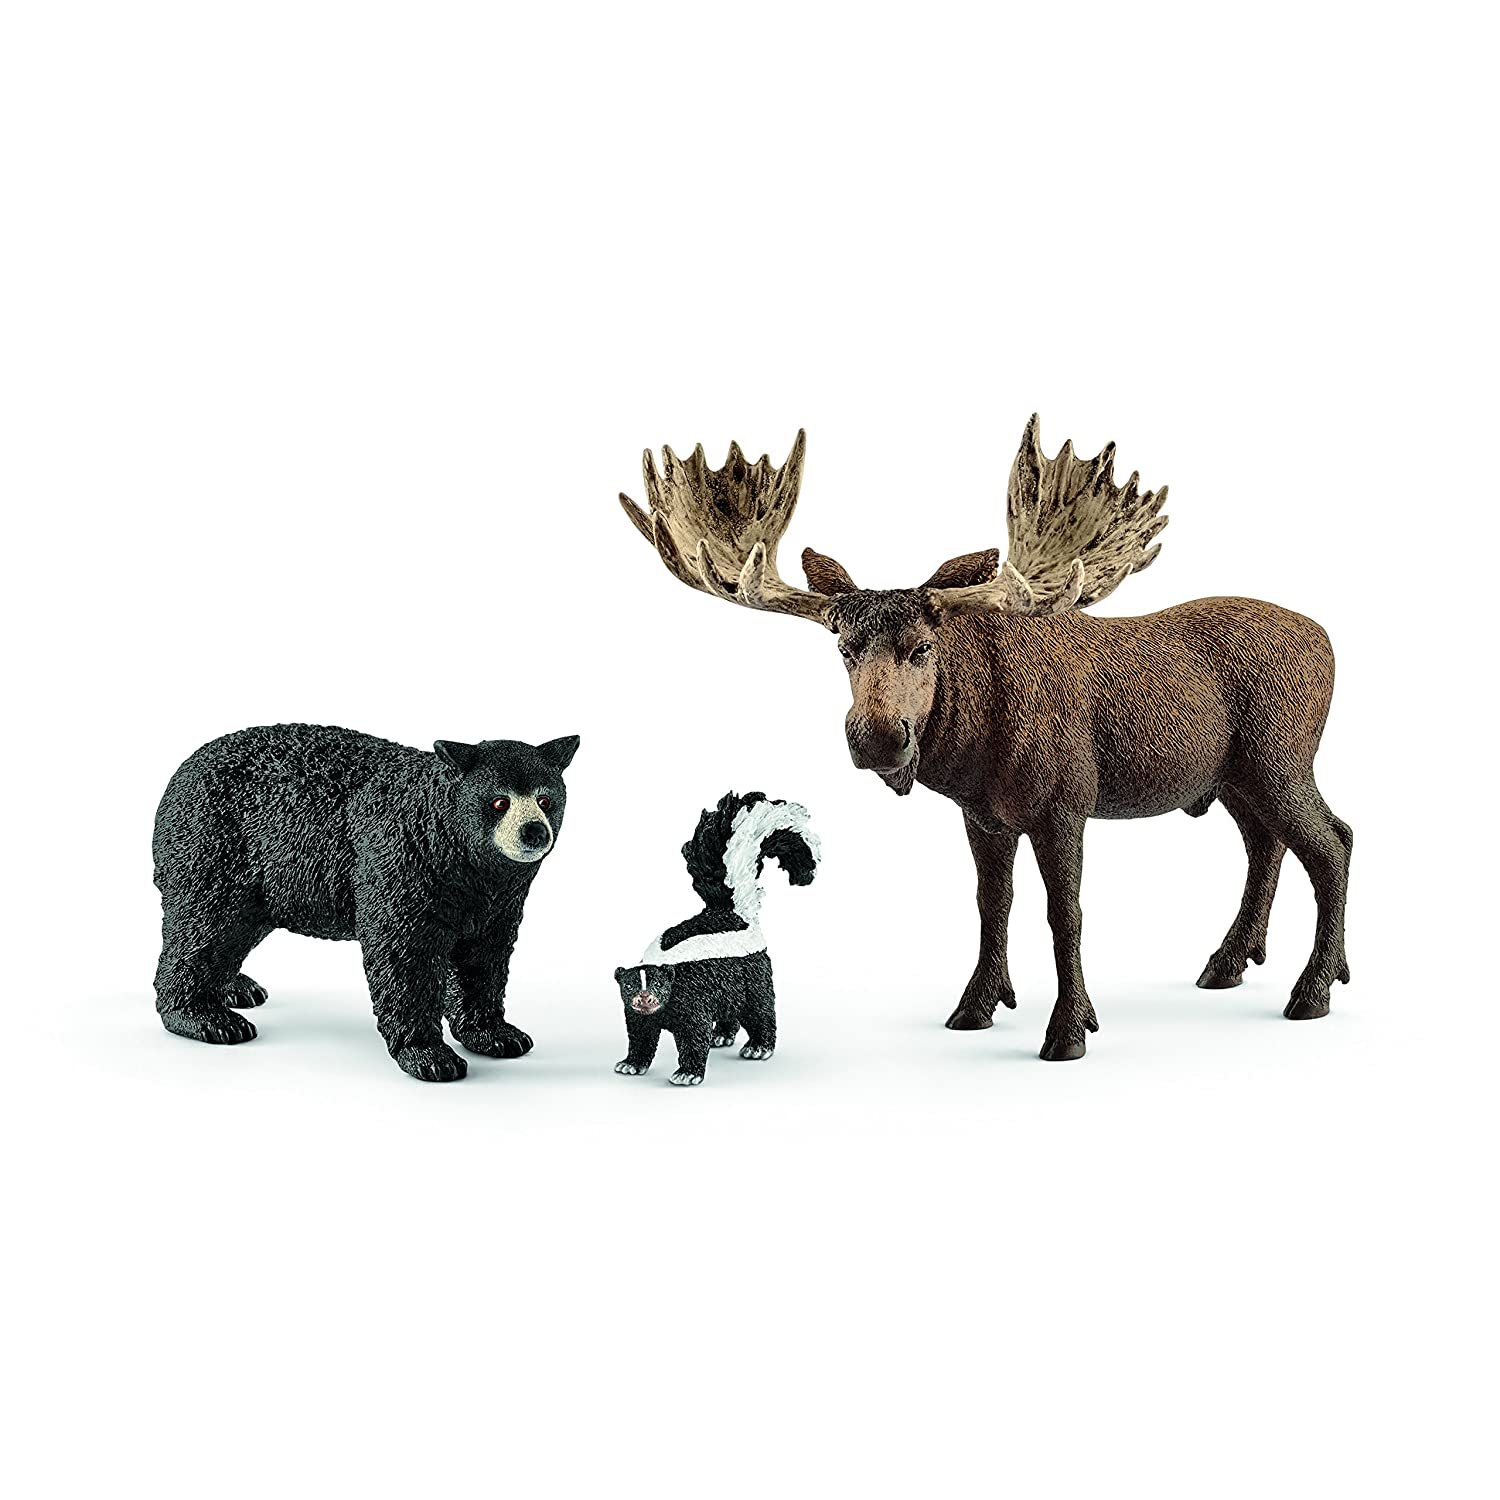 A Schleich North American Forest Dweller Set